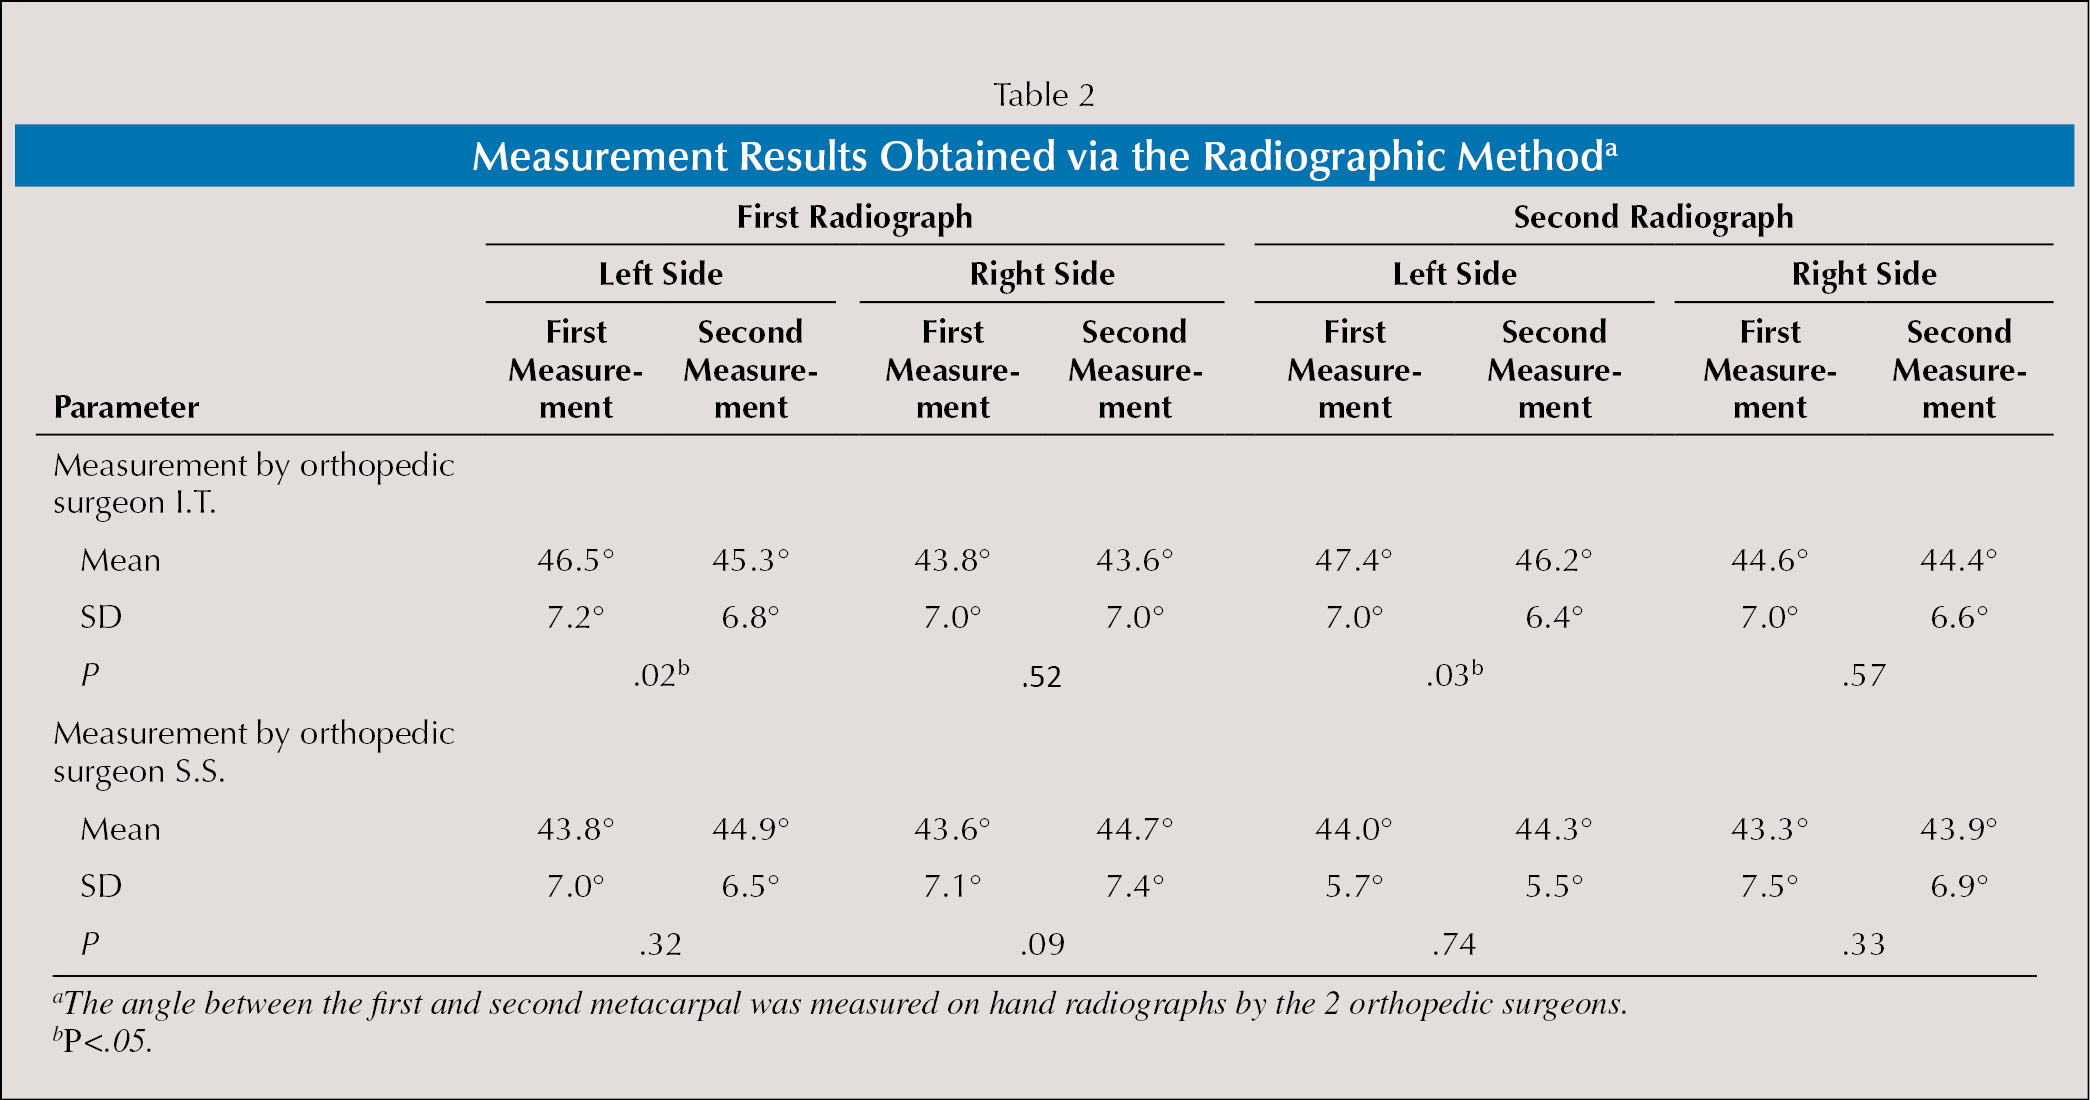 Measurement Results Obtained via the Radiographic Methoda